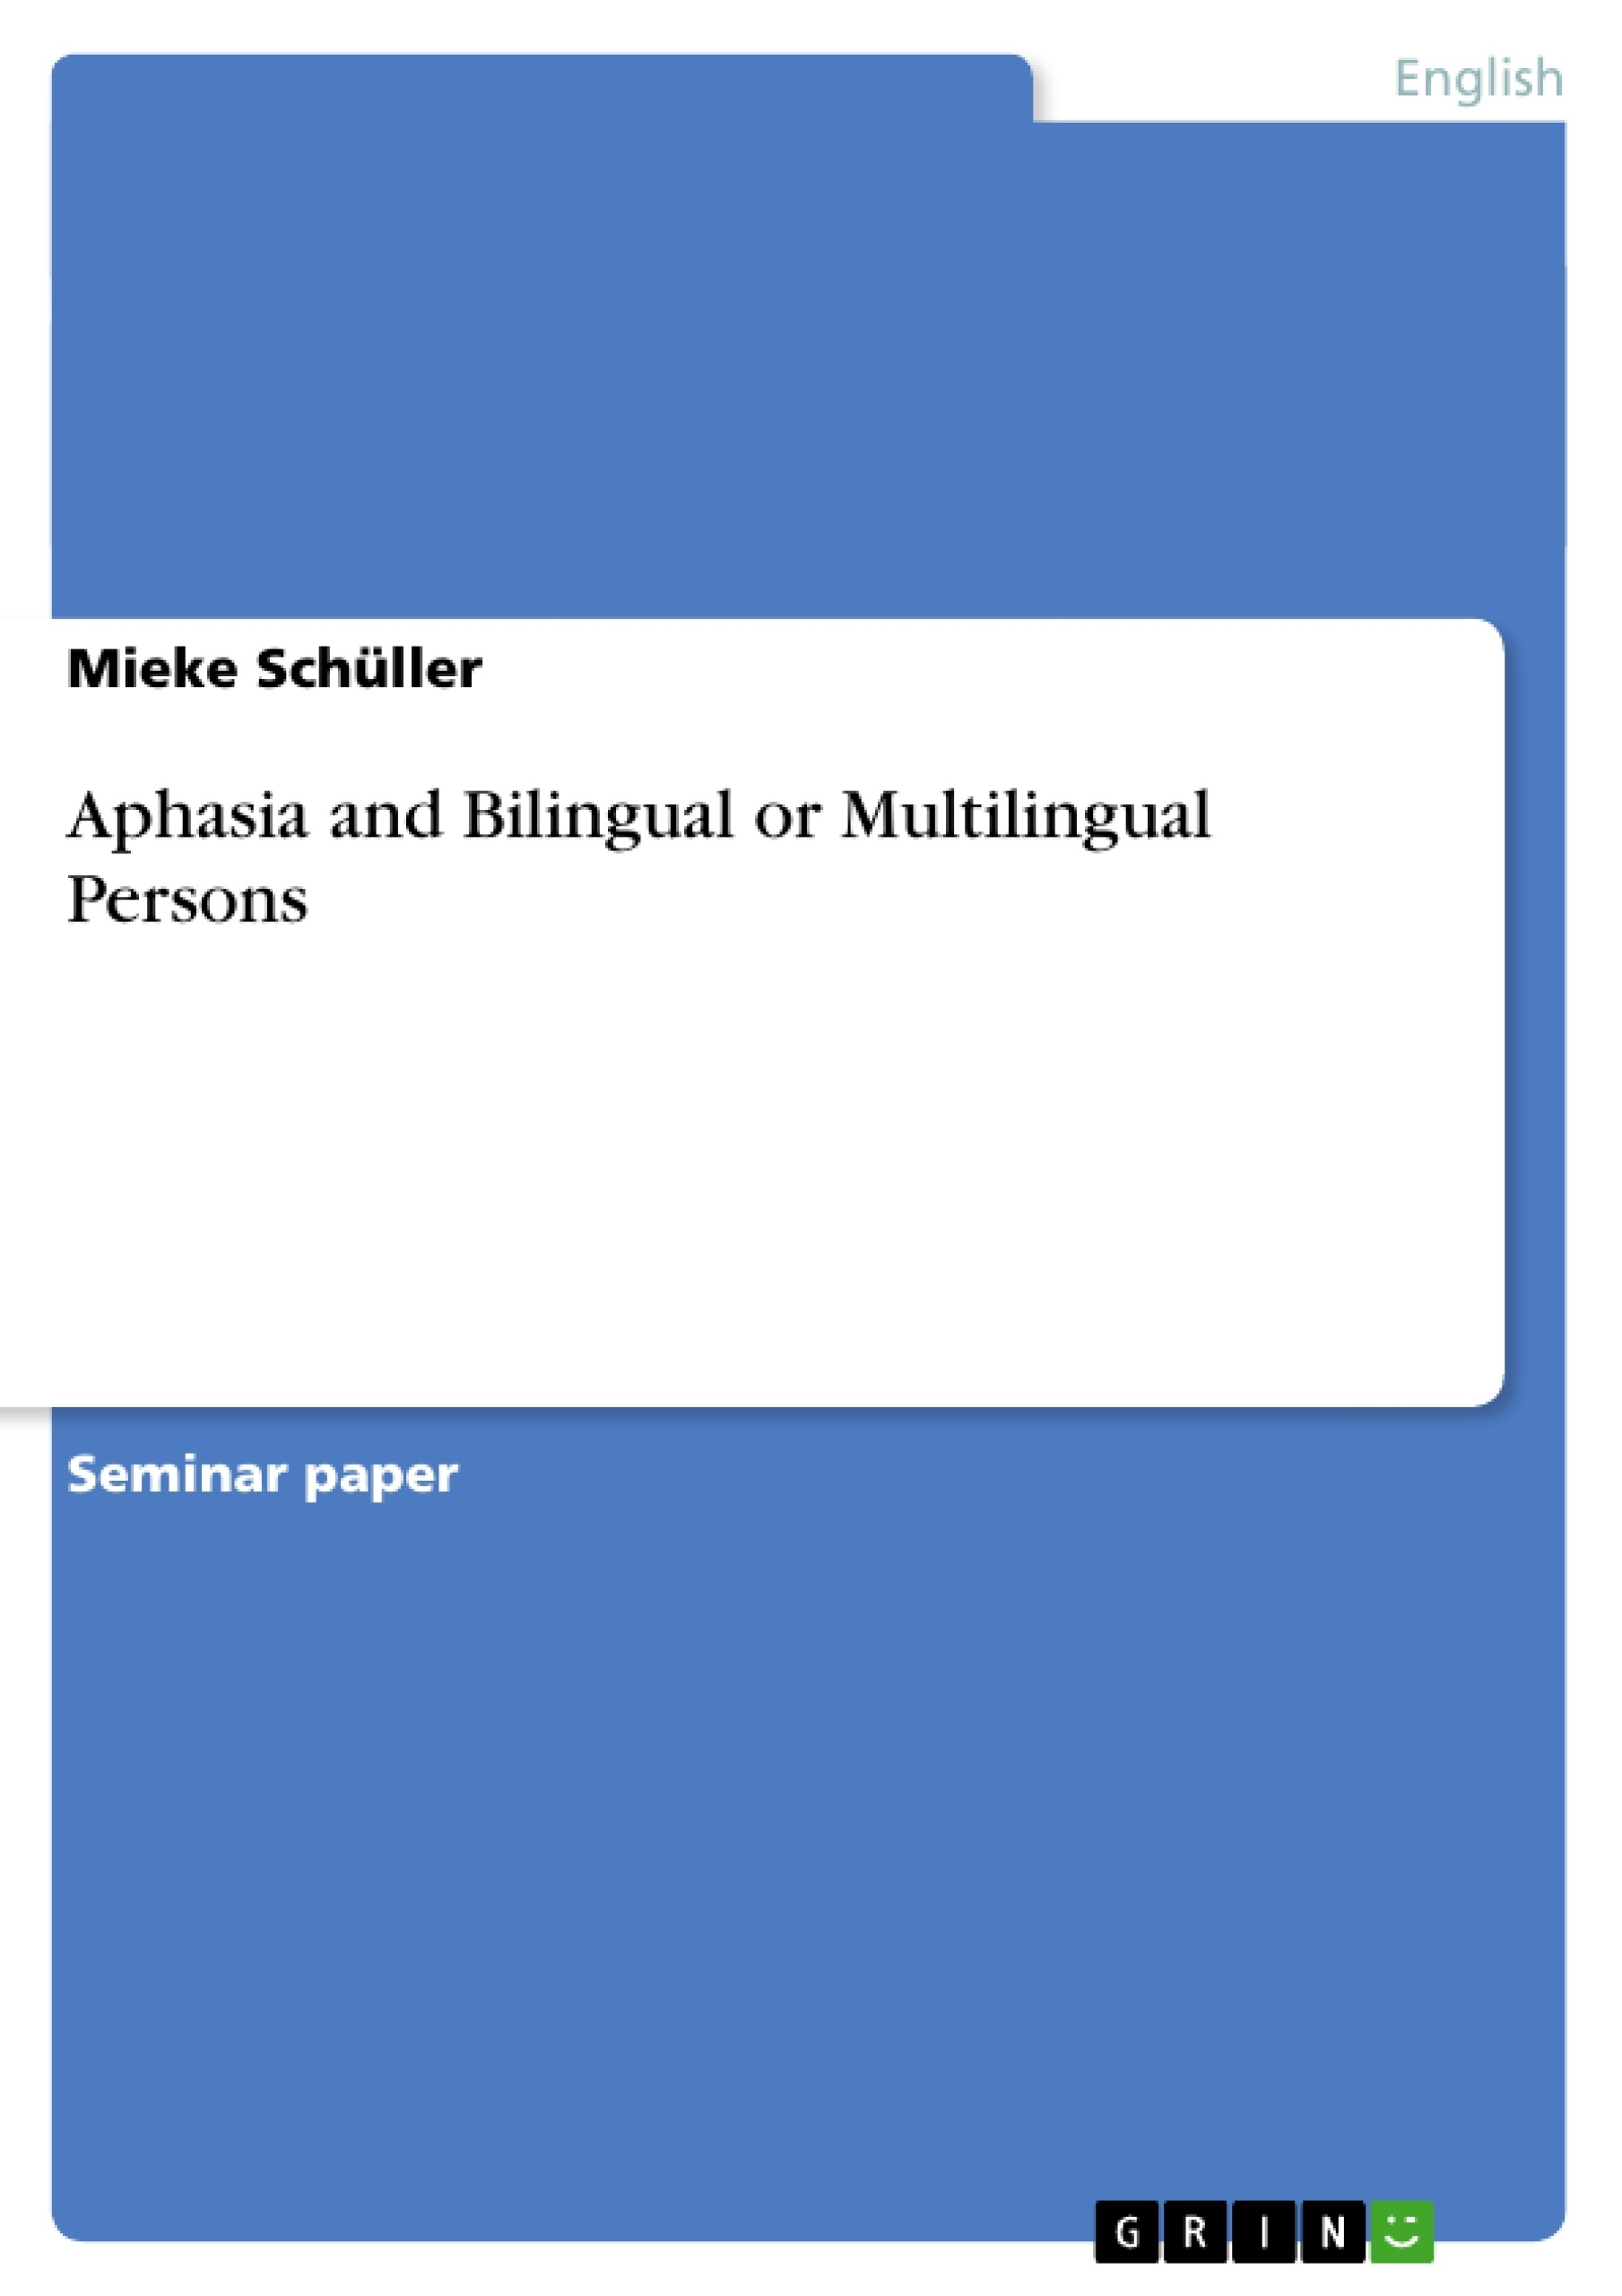 Title: Aphasia and Bilingual or Multilingual Persons